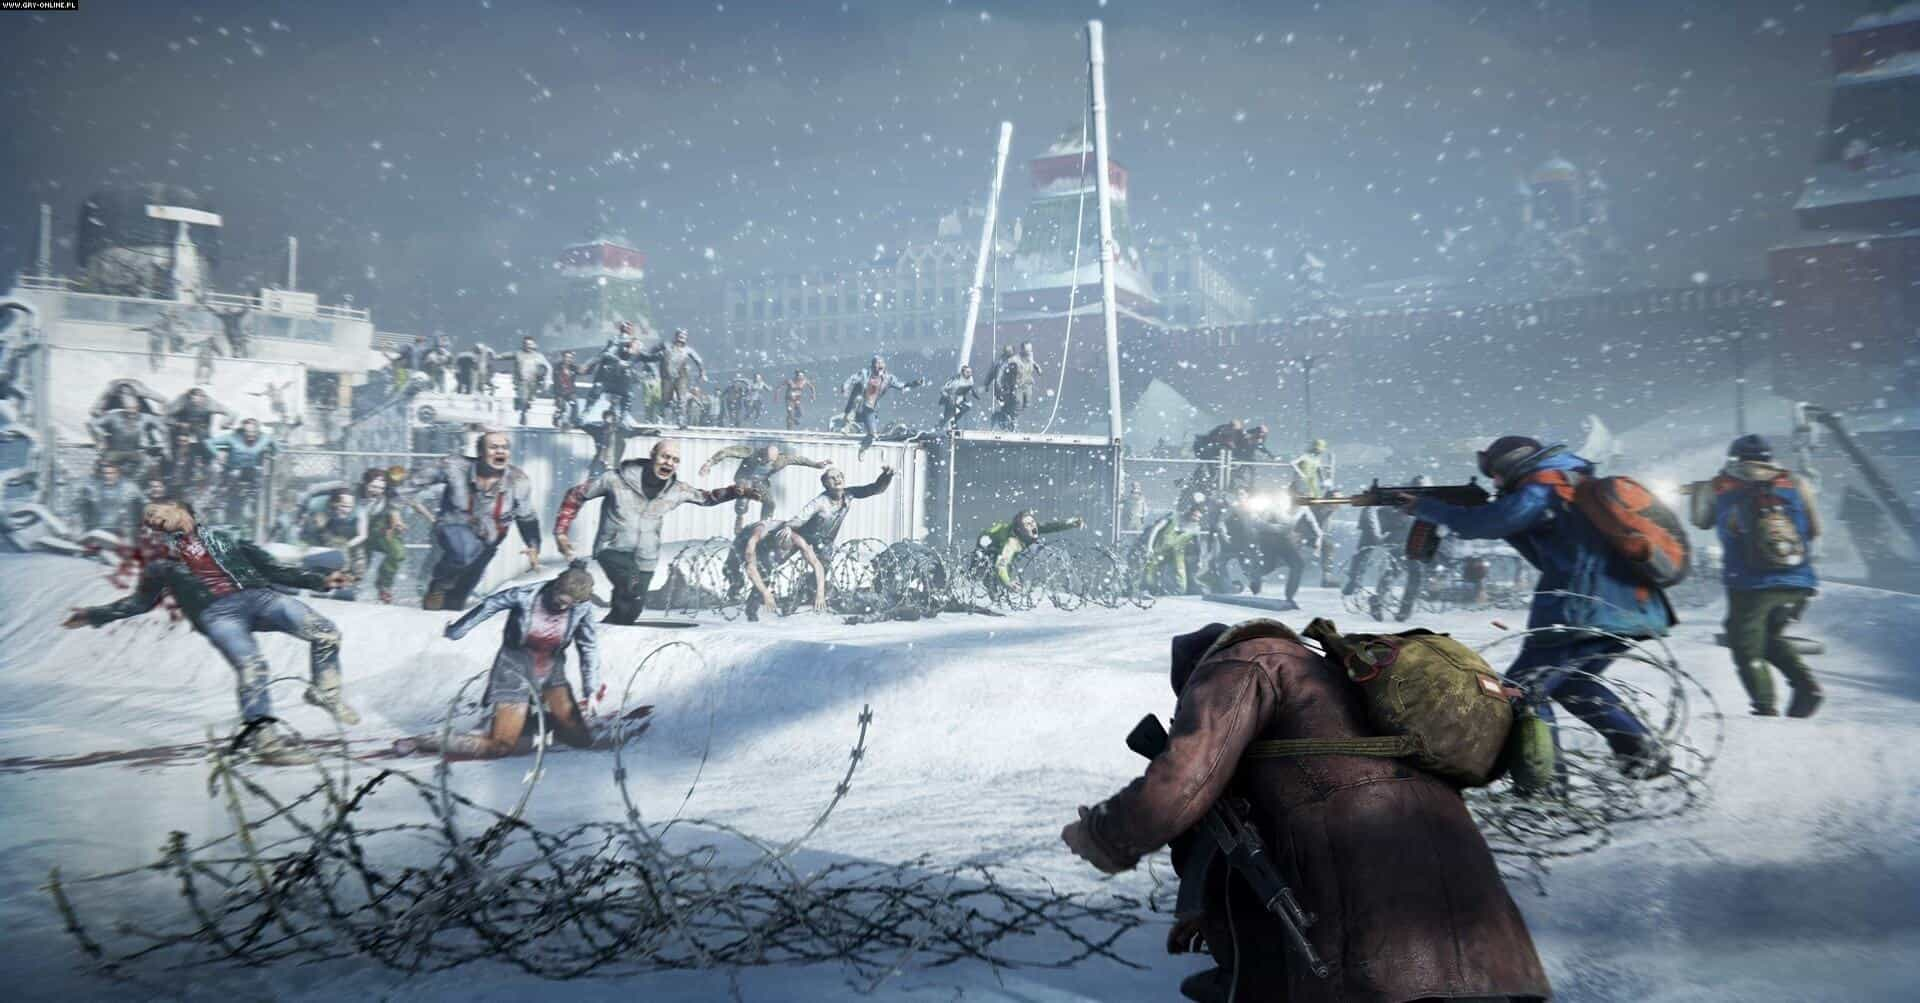 World War Z game snow screenshot - WORLD WAR Z Video Game Sells Over One Million Copies